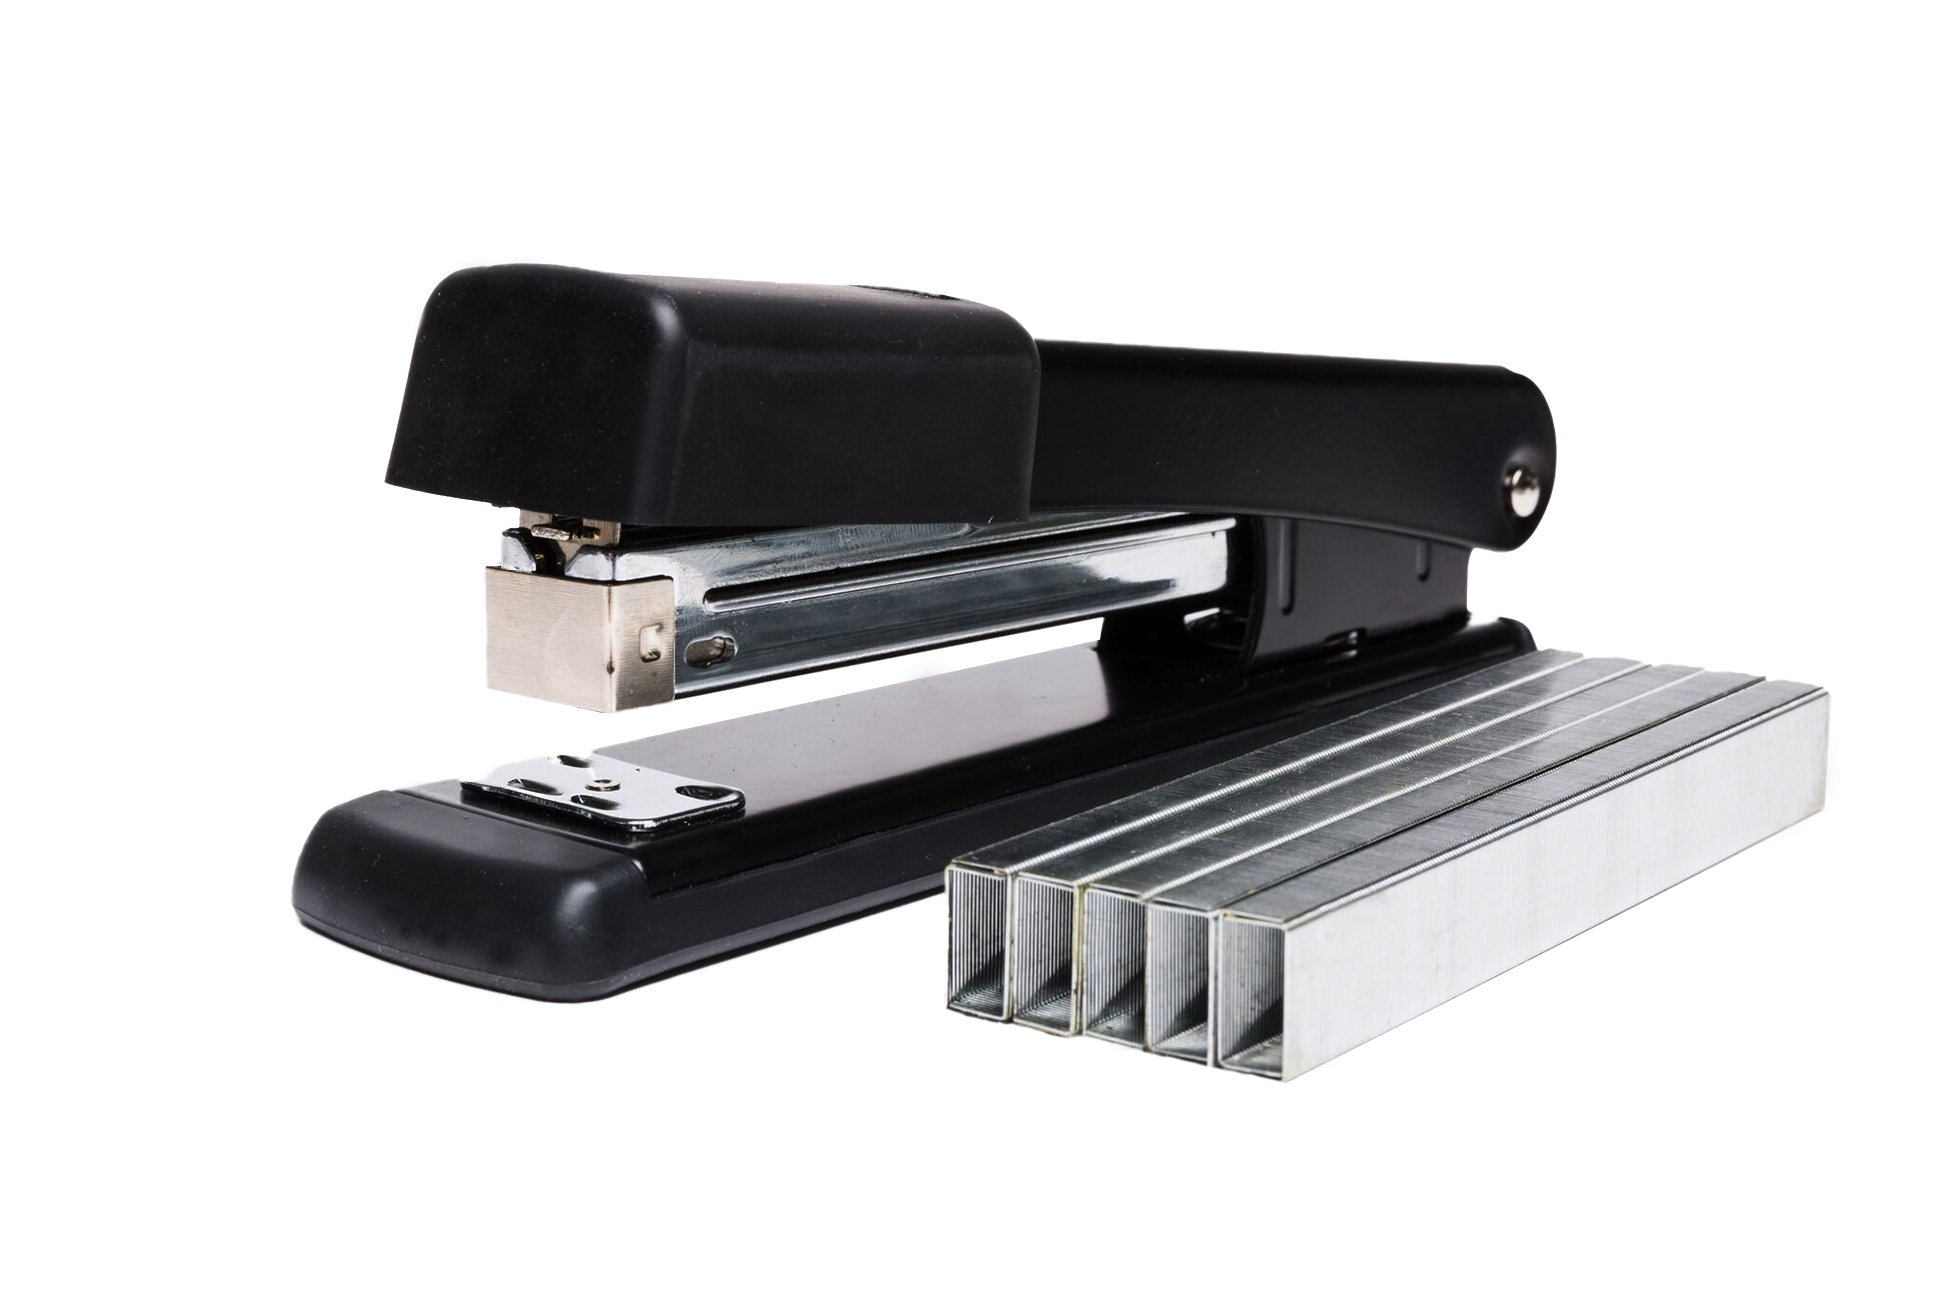 Classic Black Stapler, 25 Sheet Capacity, Jam Free Design with full Size 210 staple storage, Black Metal, 3 Pack with 6000 1/4'' staples included by Blue Summit Supplies (Image #2)